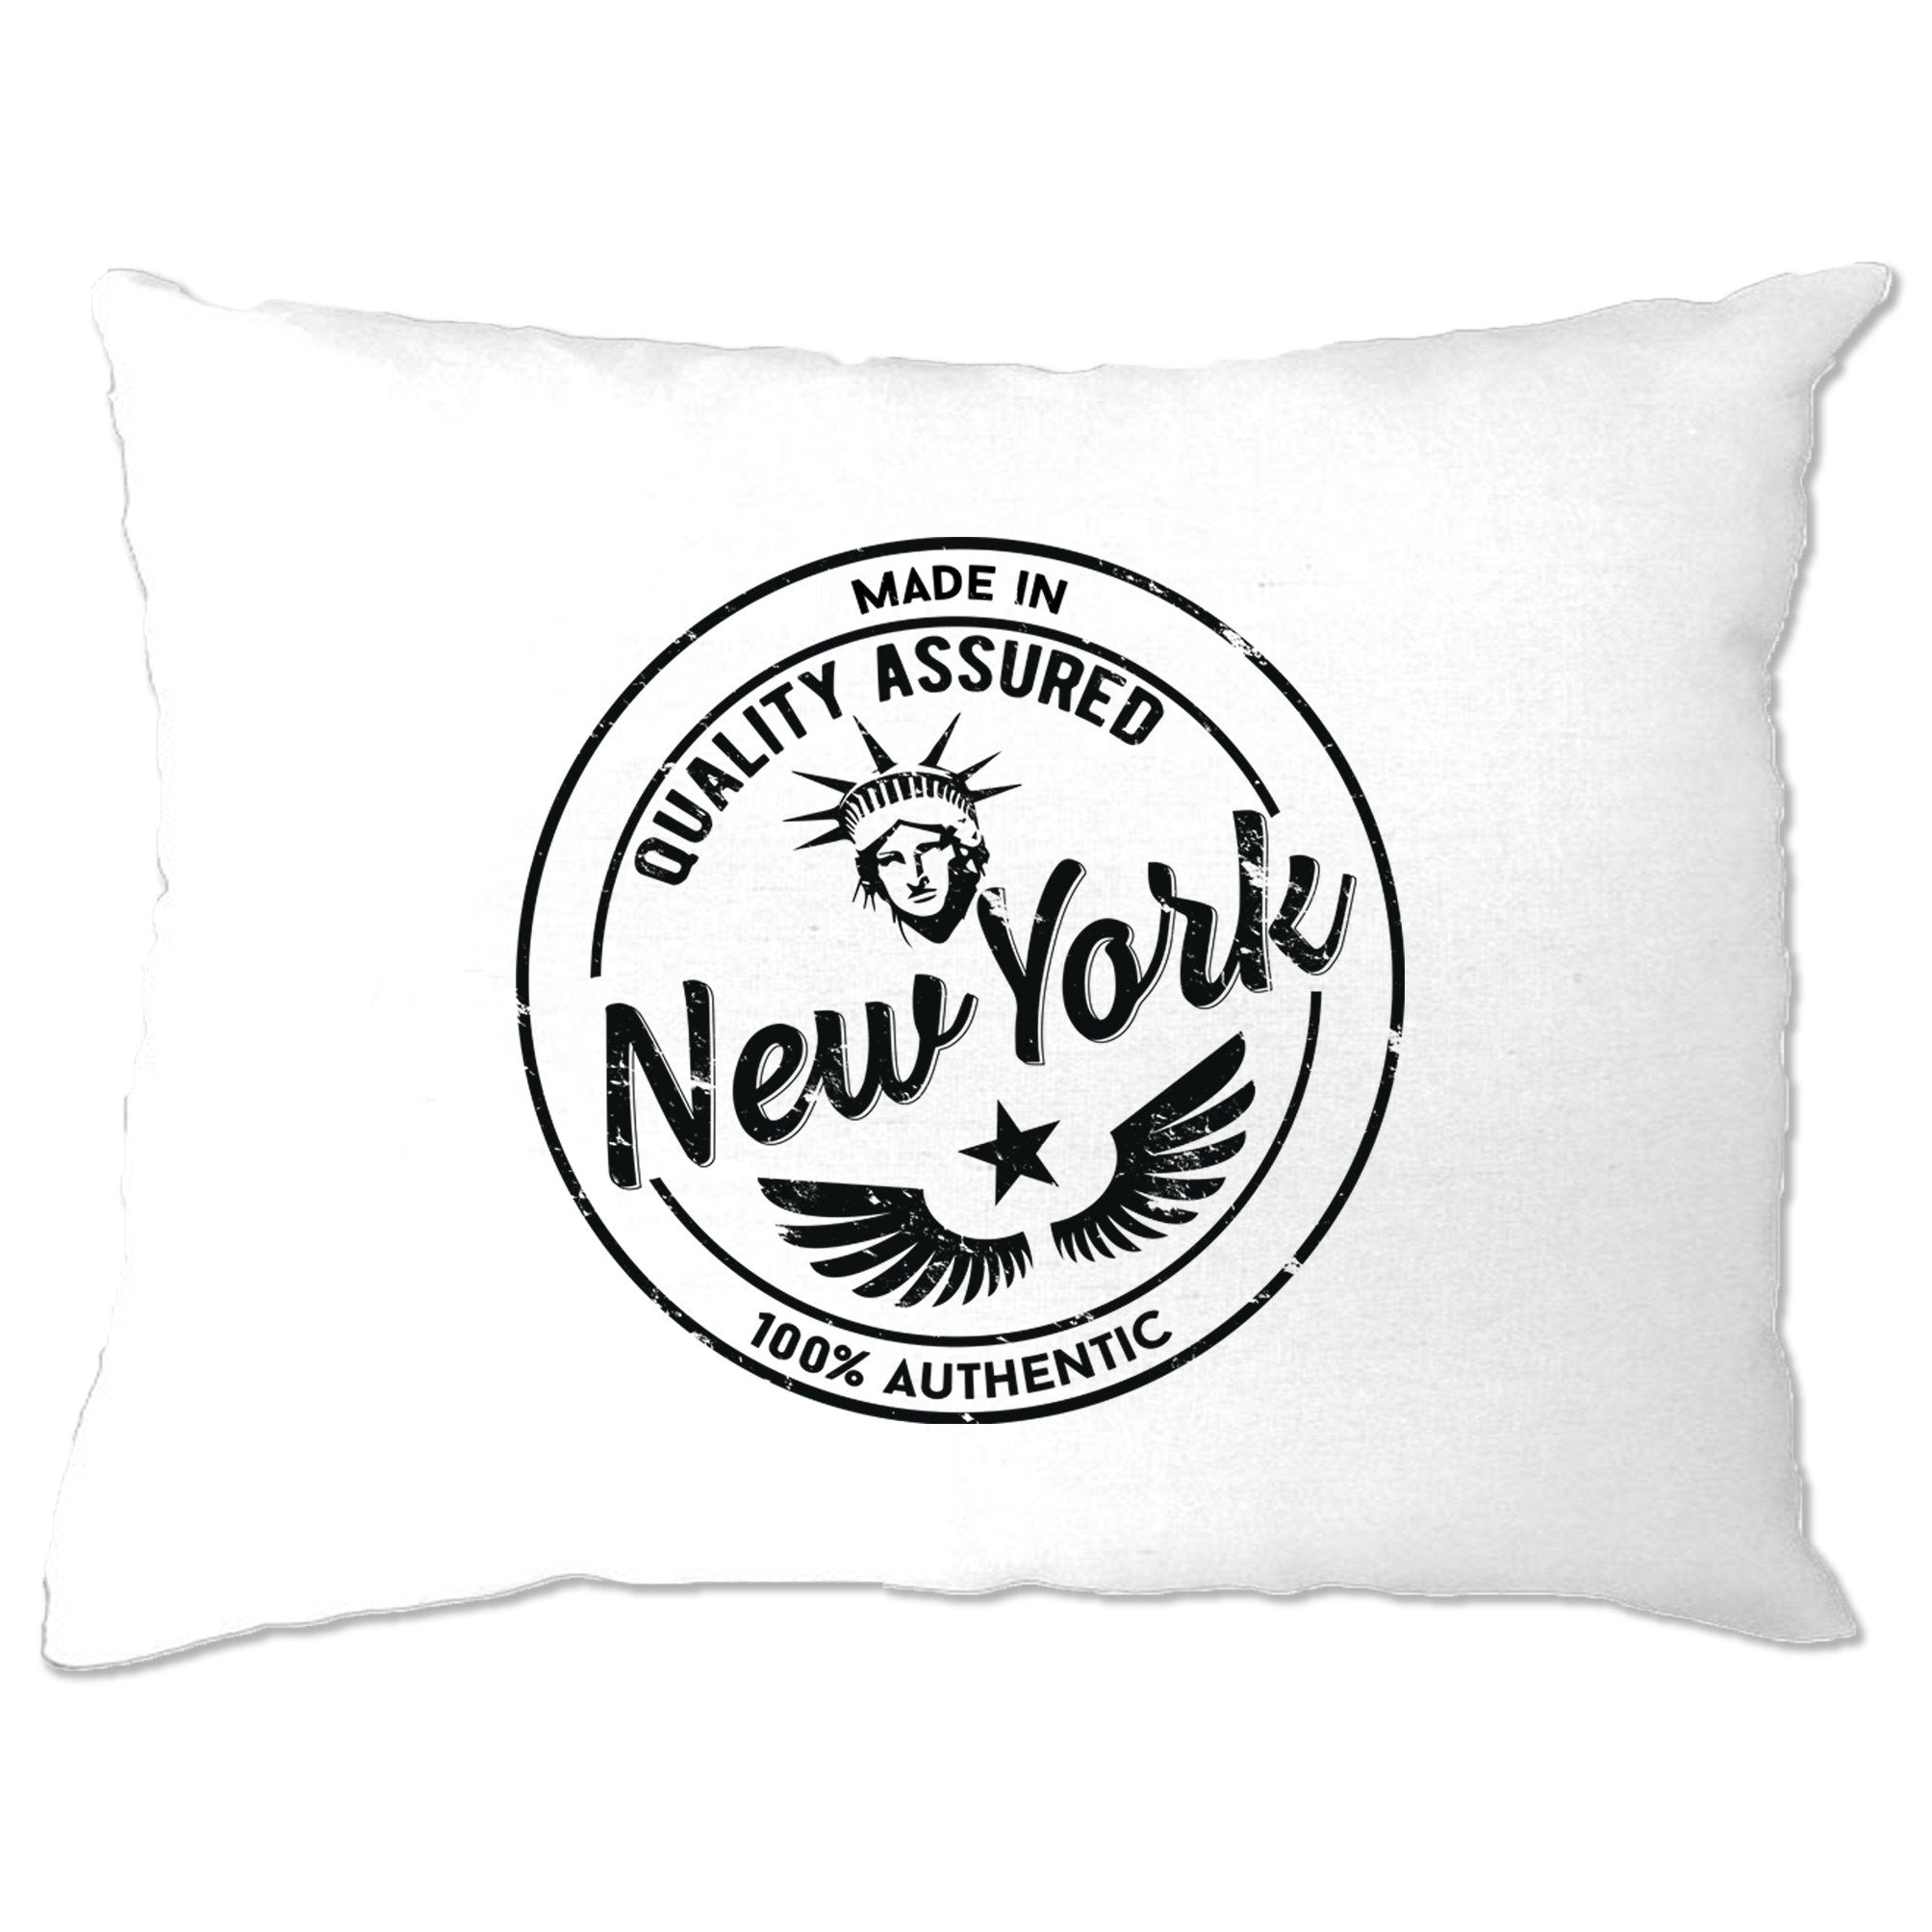 Hometown Pride Pillow Case Made in New York Stamp